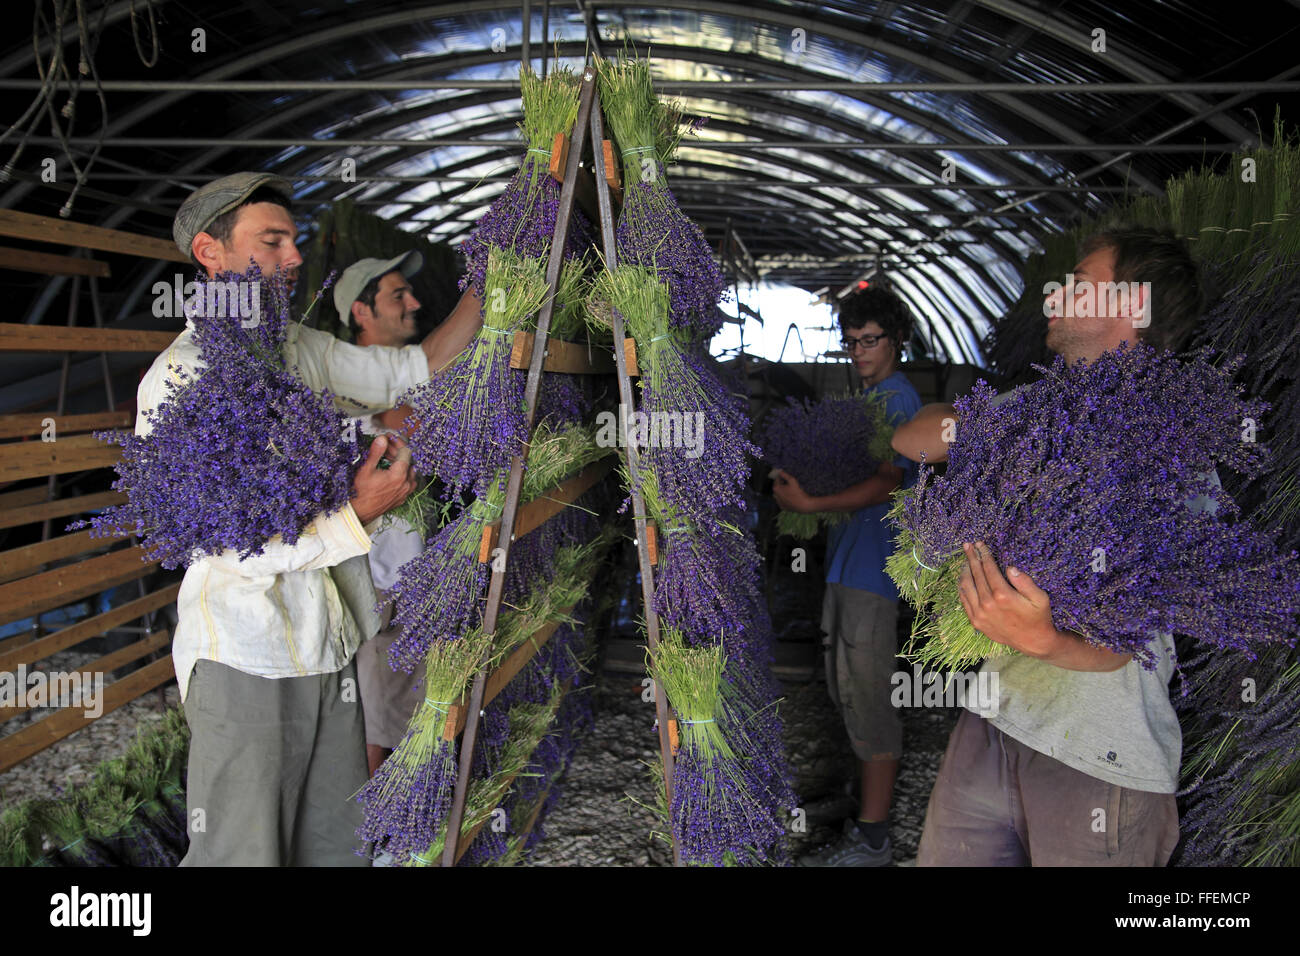 Manual Gathering Of Lavender Flowers Drying Bouquets Under Shelter